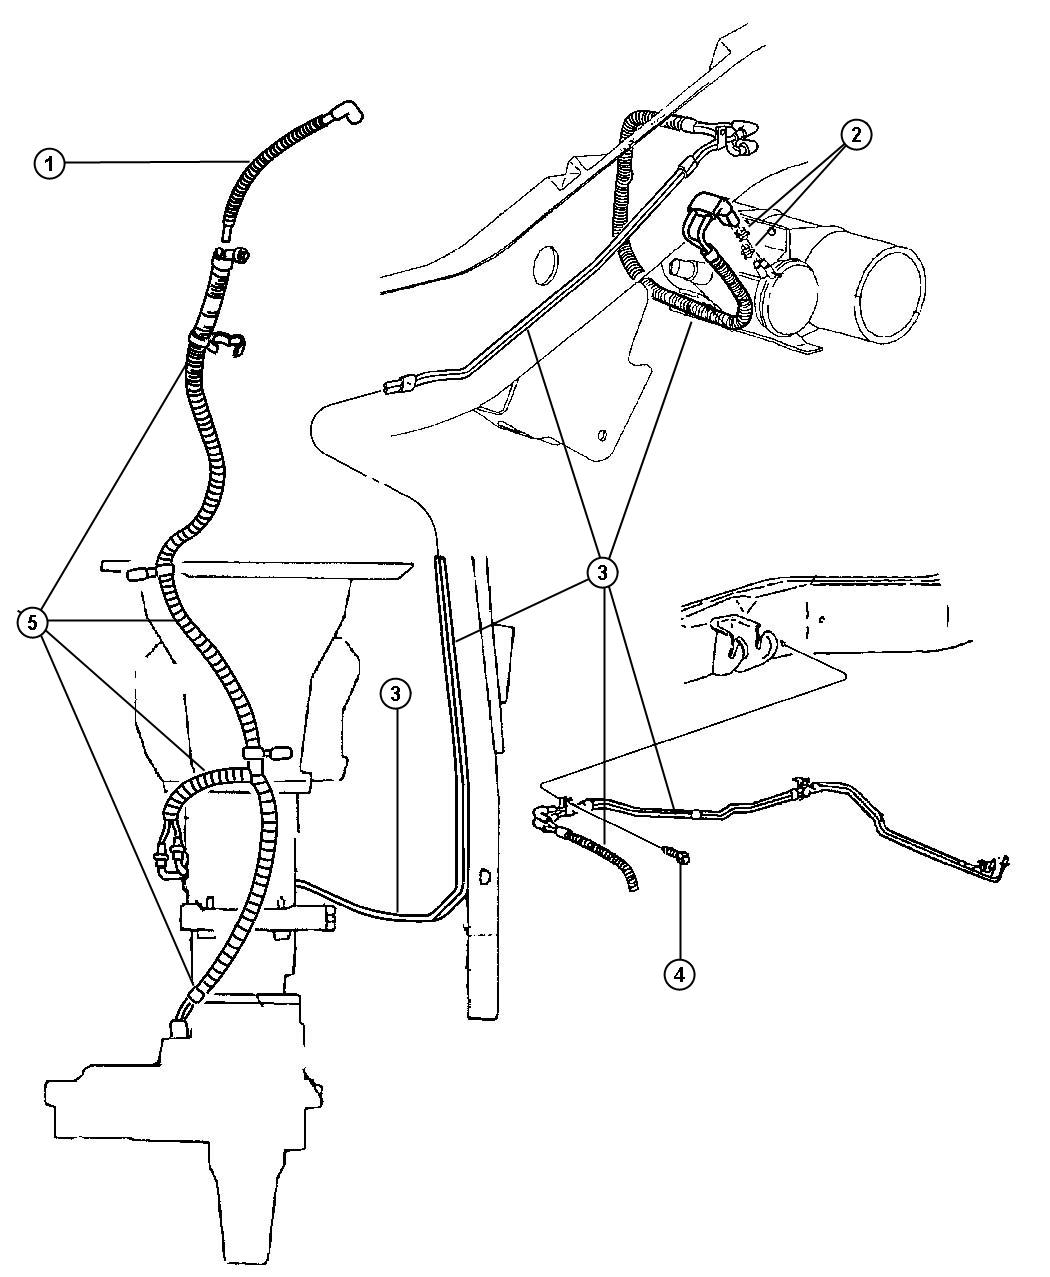 1995 Dodge Dakota Vacuum Diagram Trusted Wiring Diagrams 2500 1999 Ram Diesel Data U2022 2001 1500 4x4 Line